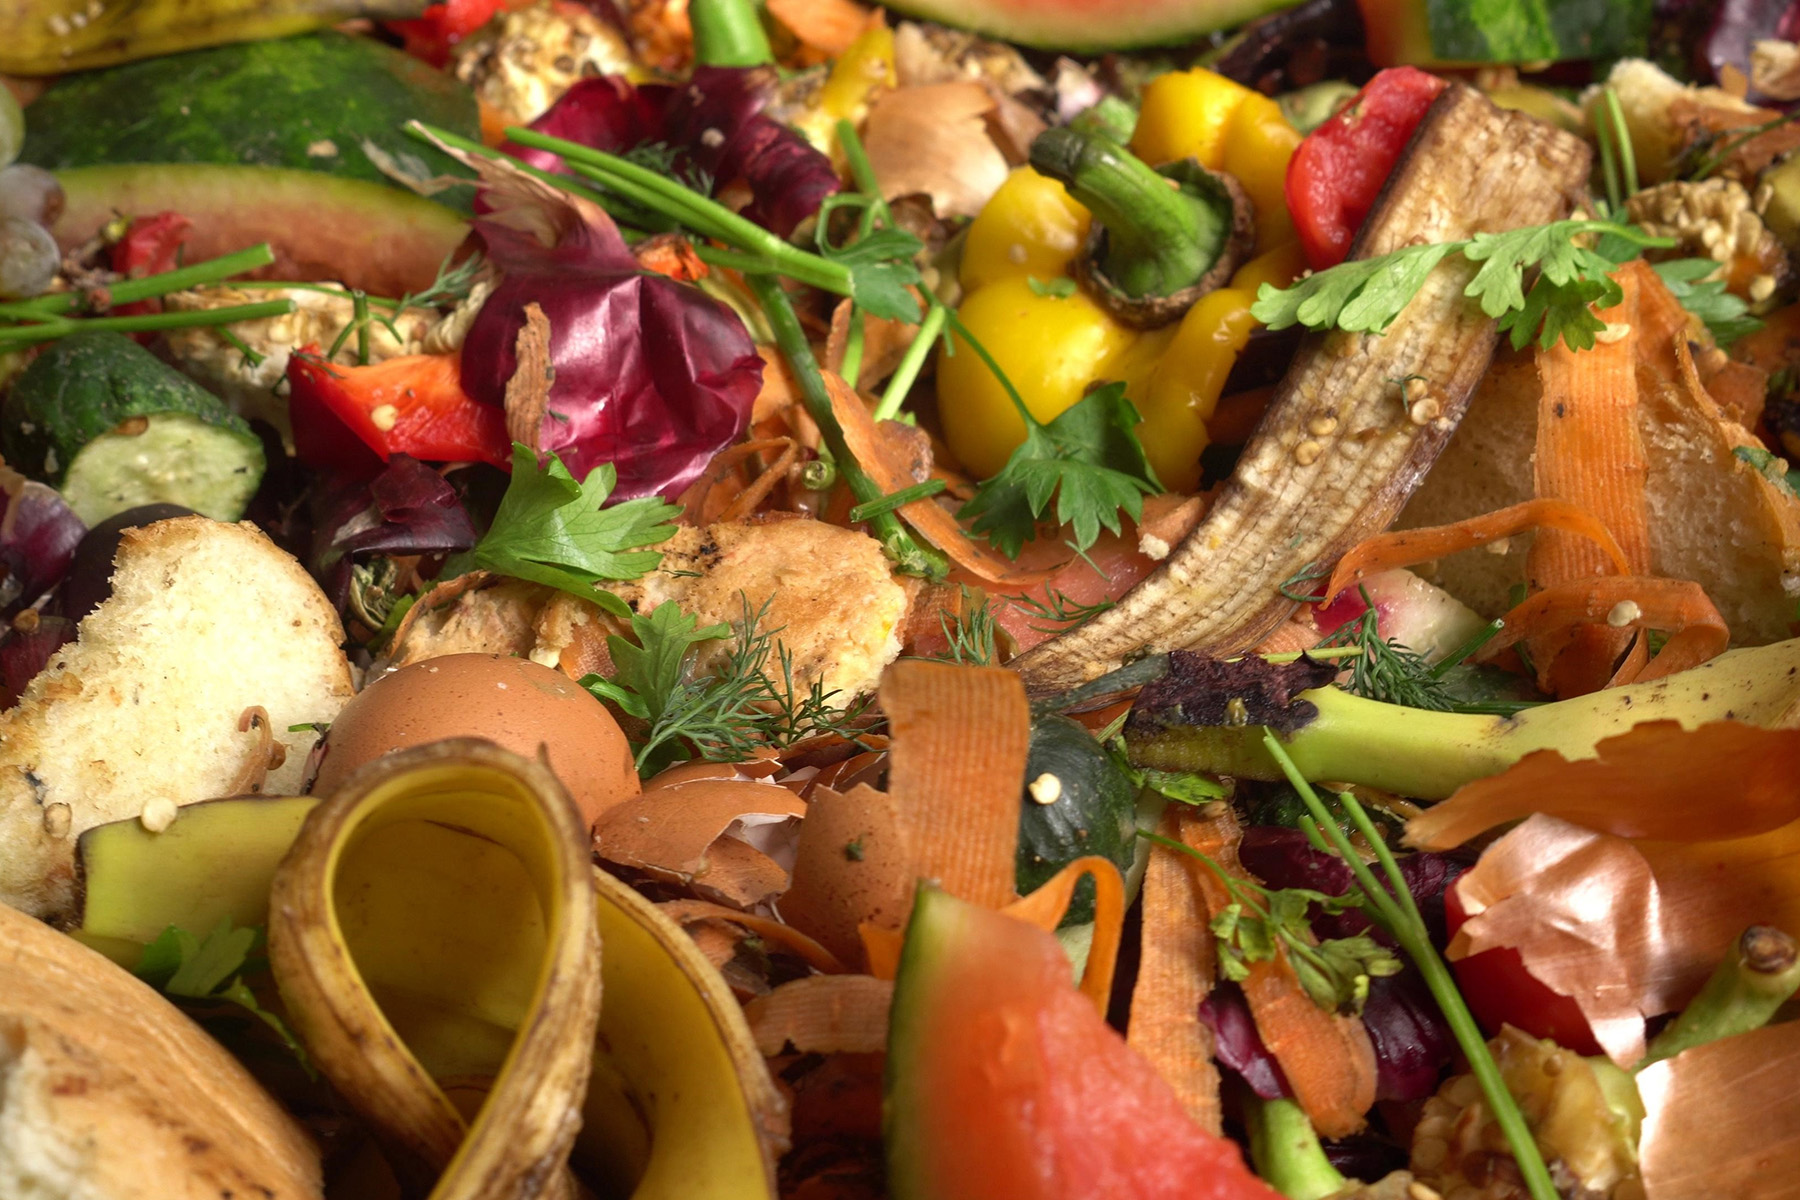 Known as 'waste stations', the anaerobic digestion process uses organic matter such as food waste